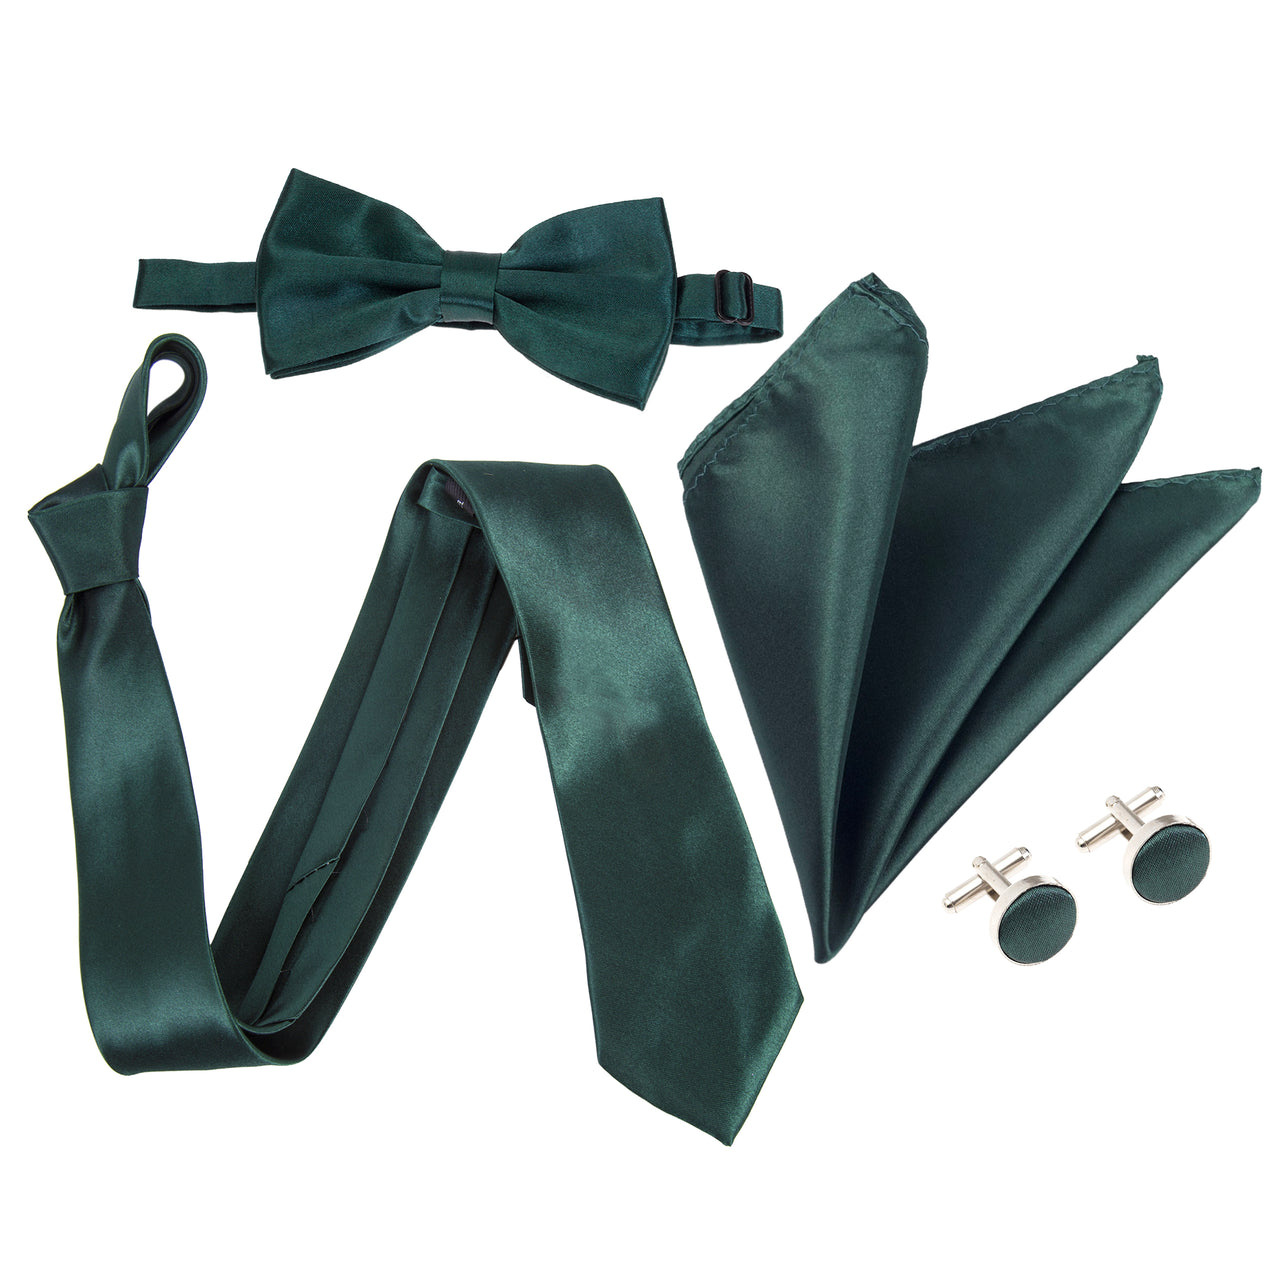 "4pc Tie Set: Wide 3"" Tie, Bow Tie, Handkerchief & Cufflinks - Dark Green"